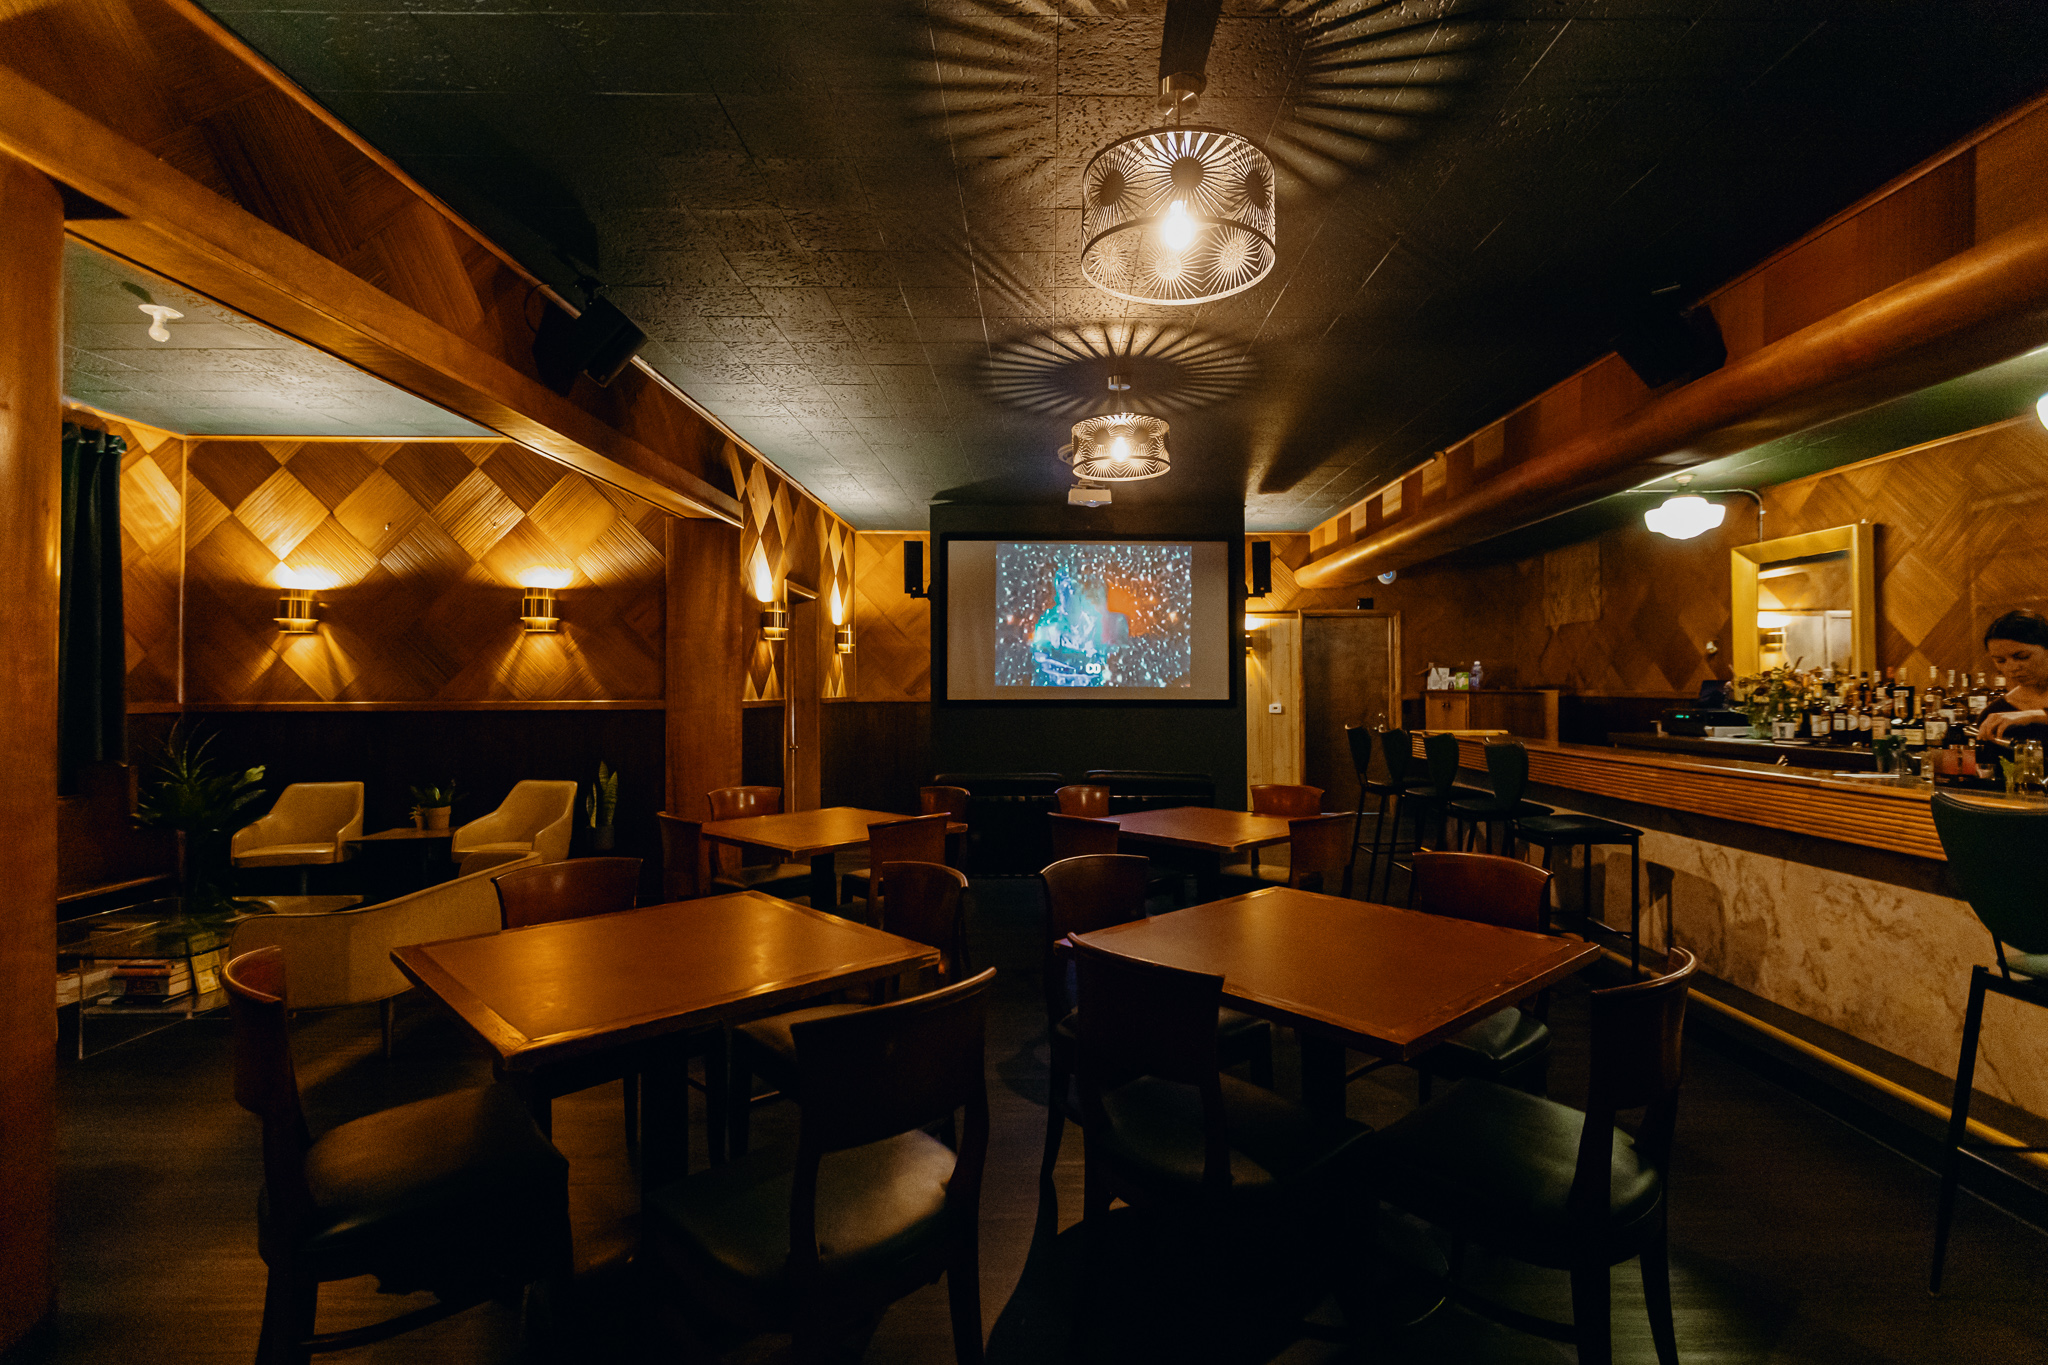 A dimly lit room with four-top tables, a bar, and floor-to-ceiling wood paneled walls.